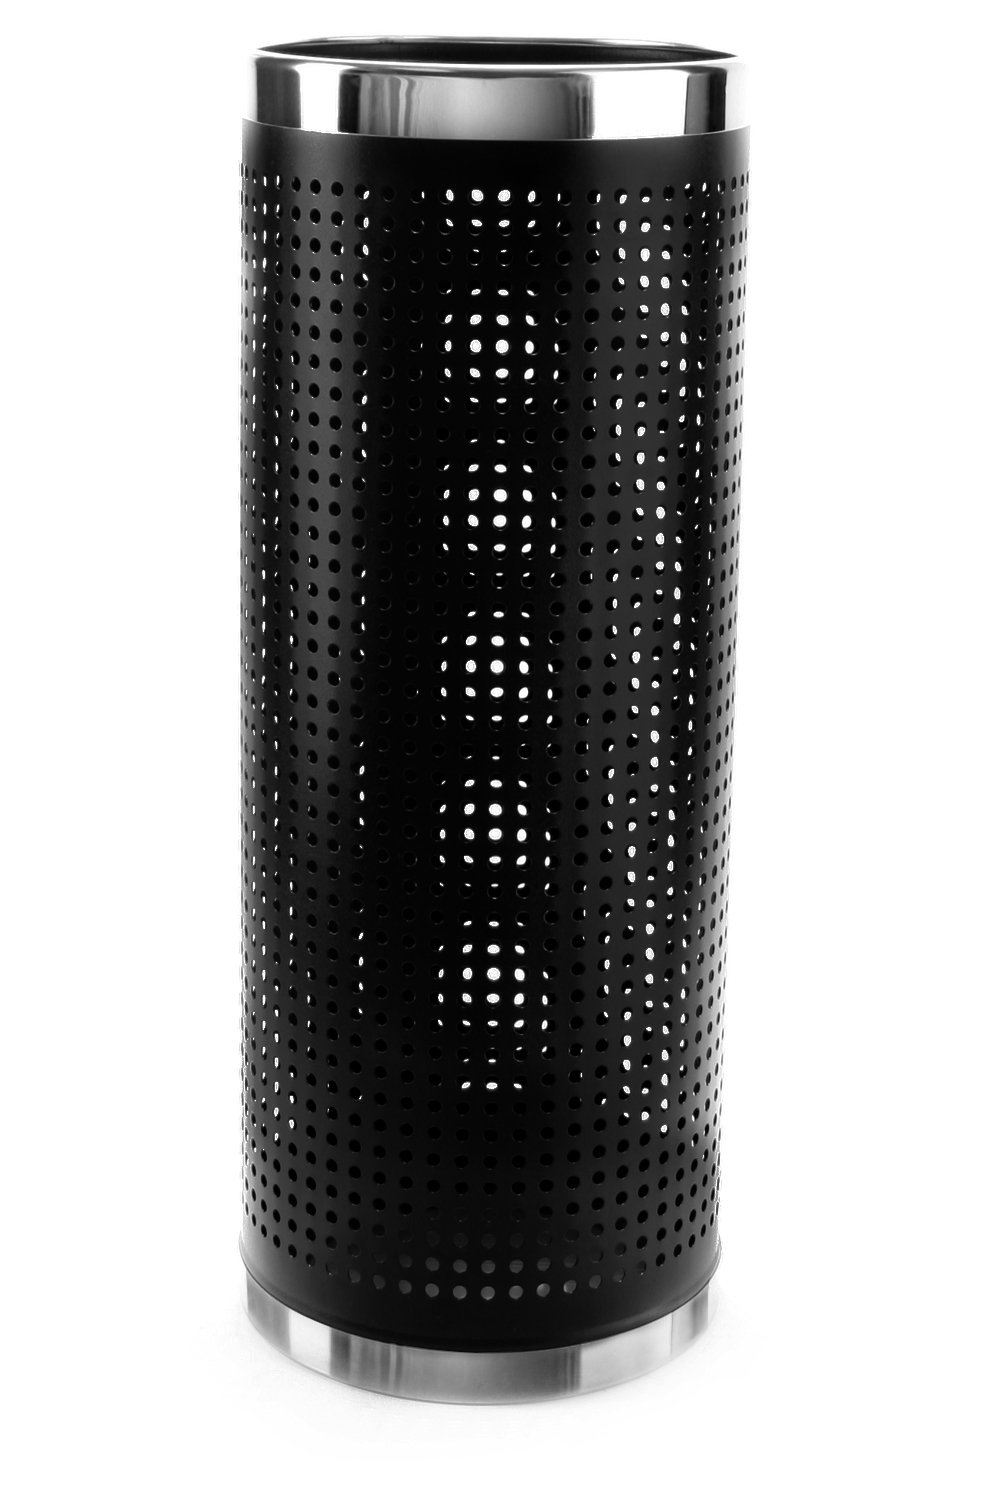 Brelso Metal Perforated Side Umbrella Stand with Stainless Steel Rims, Black